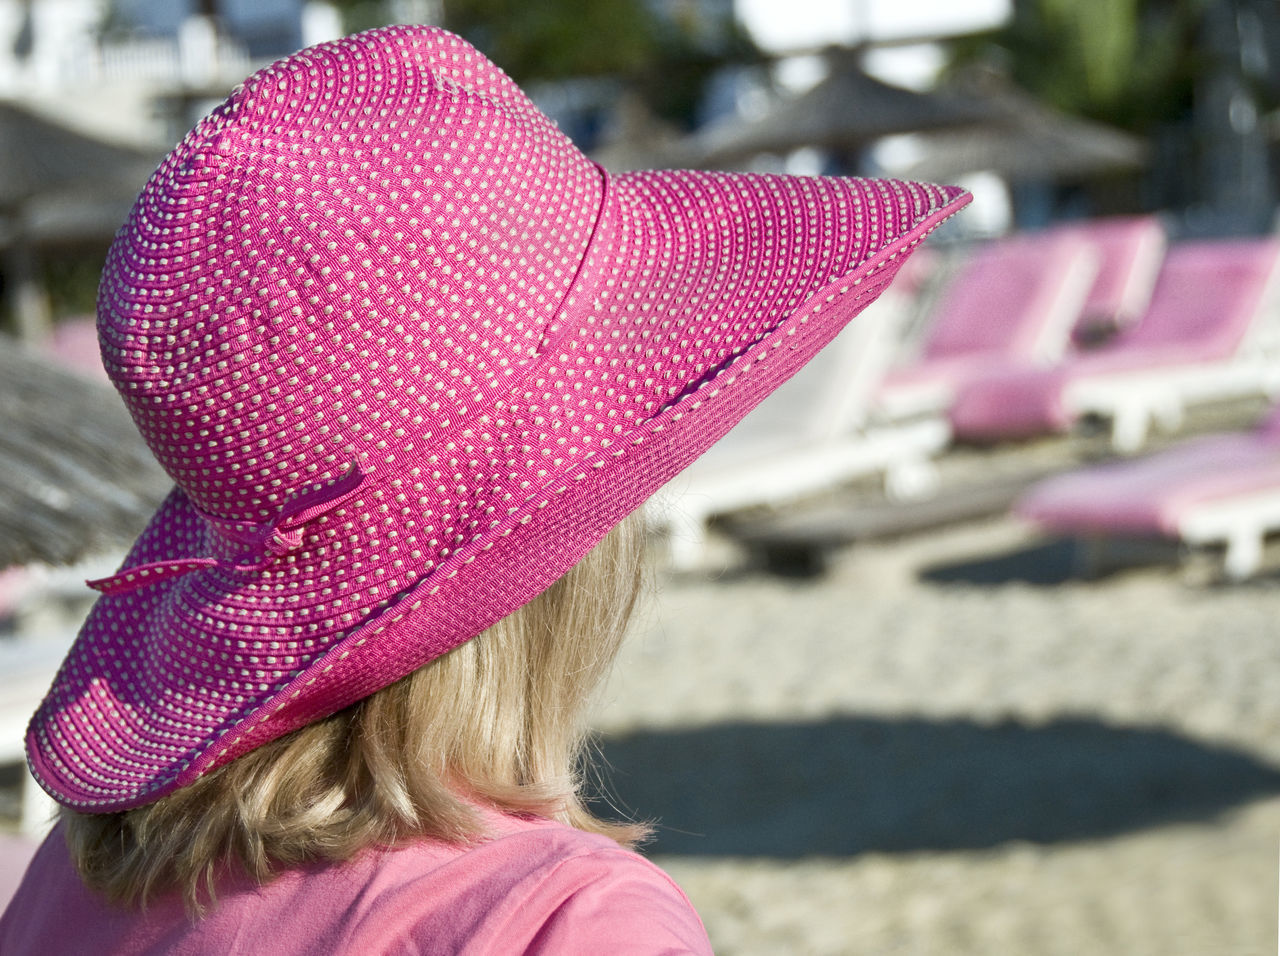 Pink Color Polka Dot Hat Polka Dots  polka dot hat Wearing Hat Whatwhowhere Pattern Pieces